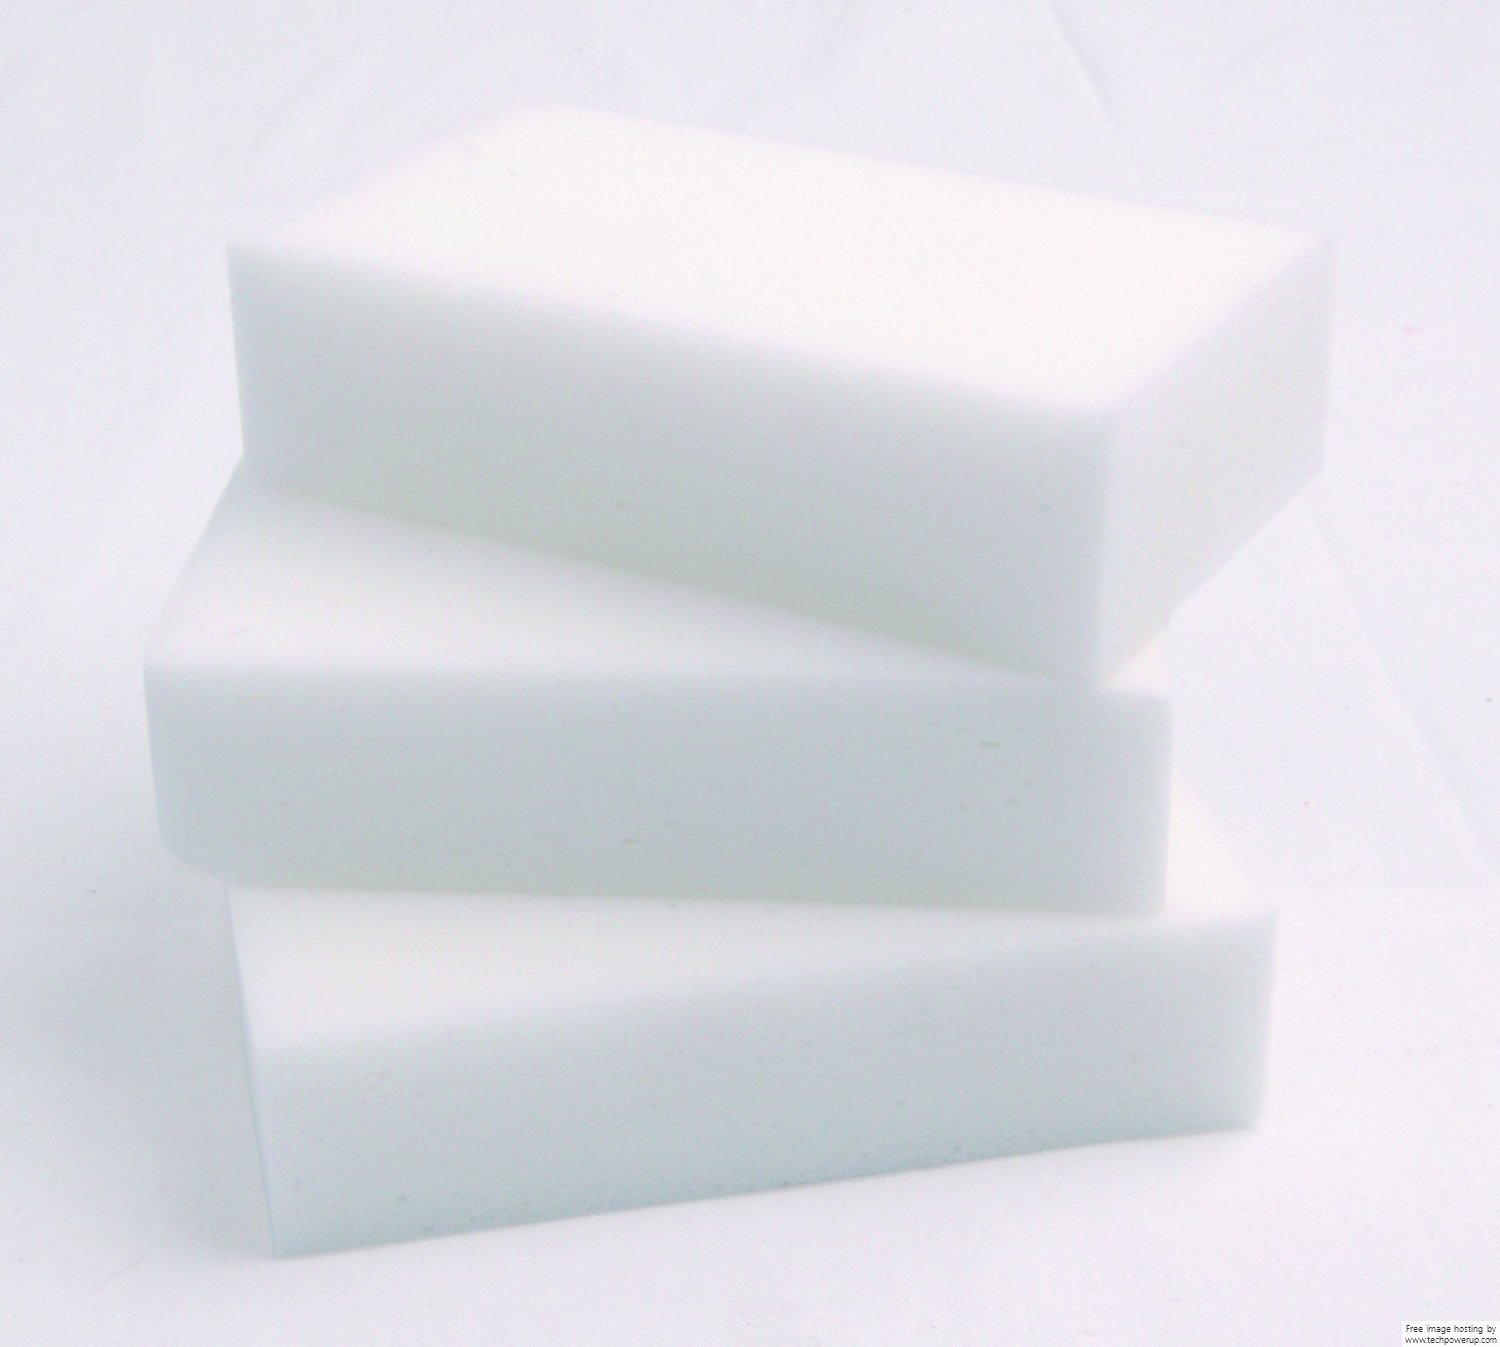 3x 10 Magic Eraser Sponges - For Chemical Free Stain and Mark Removal.